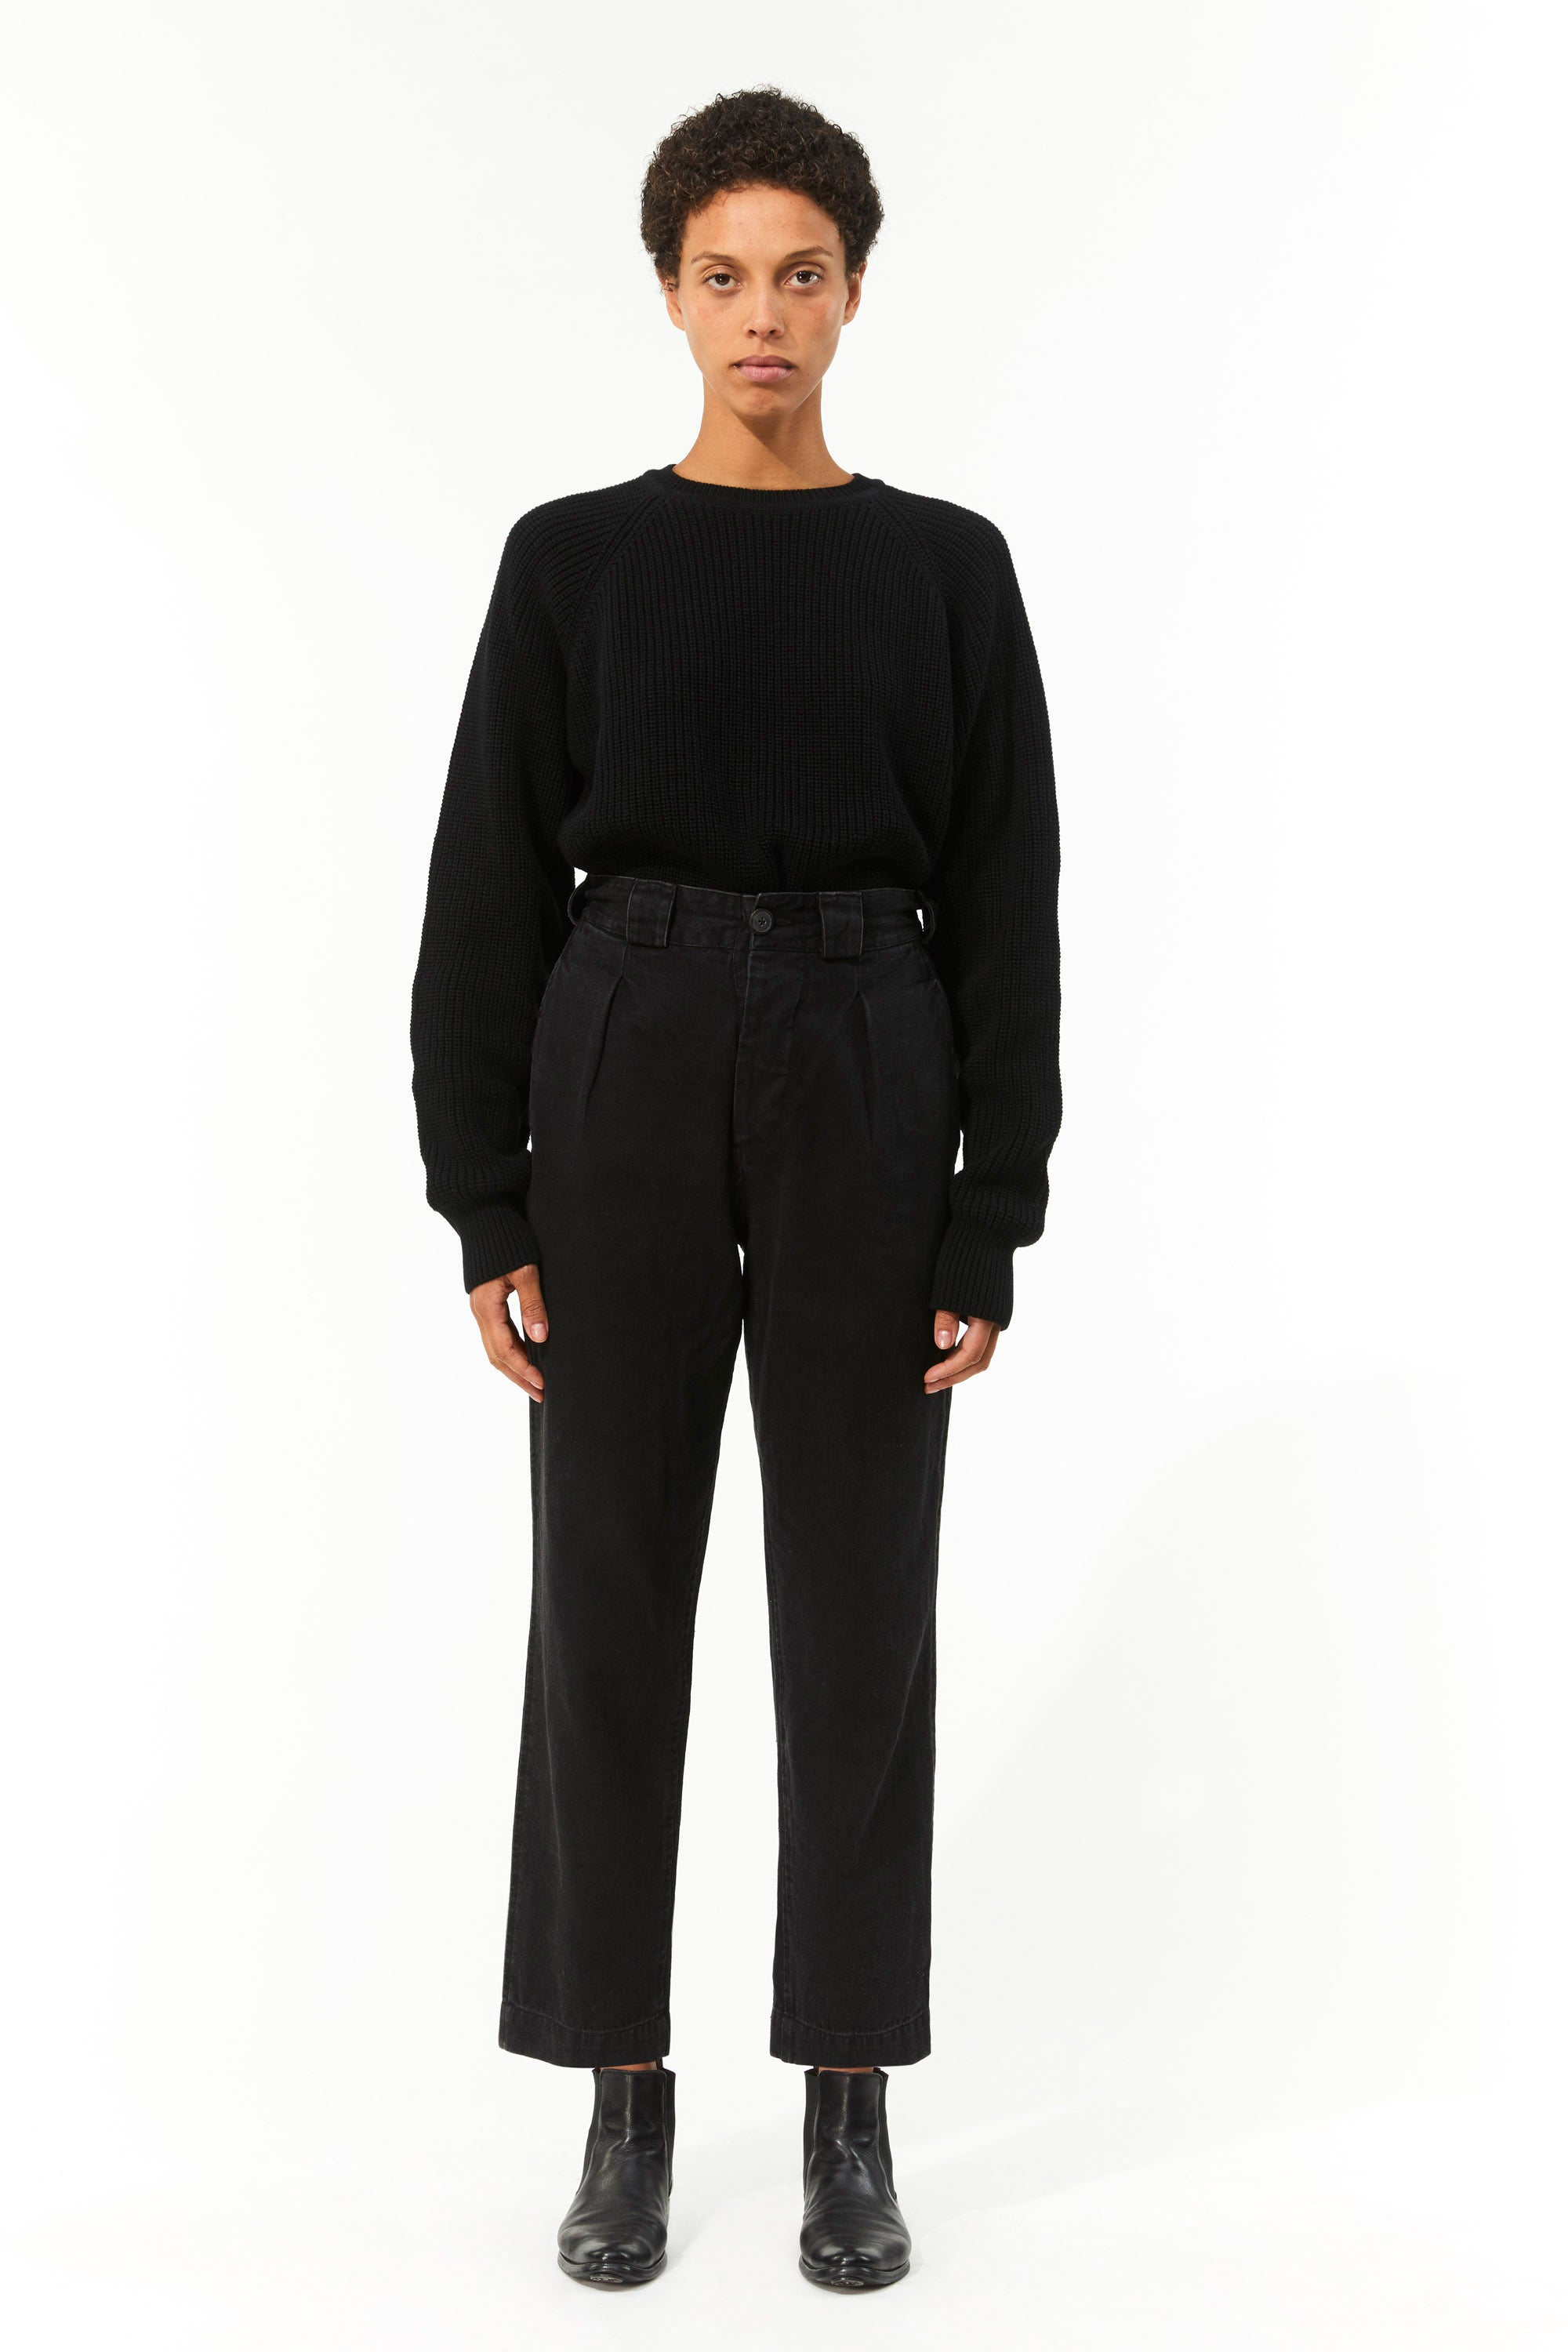 Mara Hoffman Black Jade Pant in hemp and organic cotton (front)